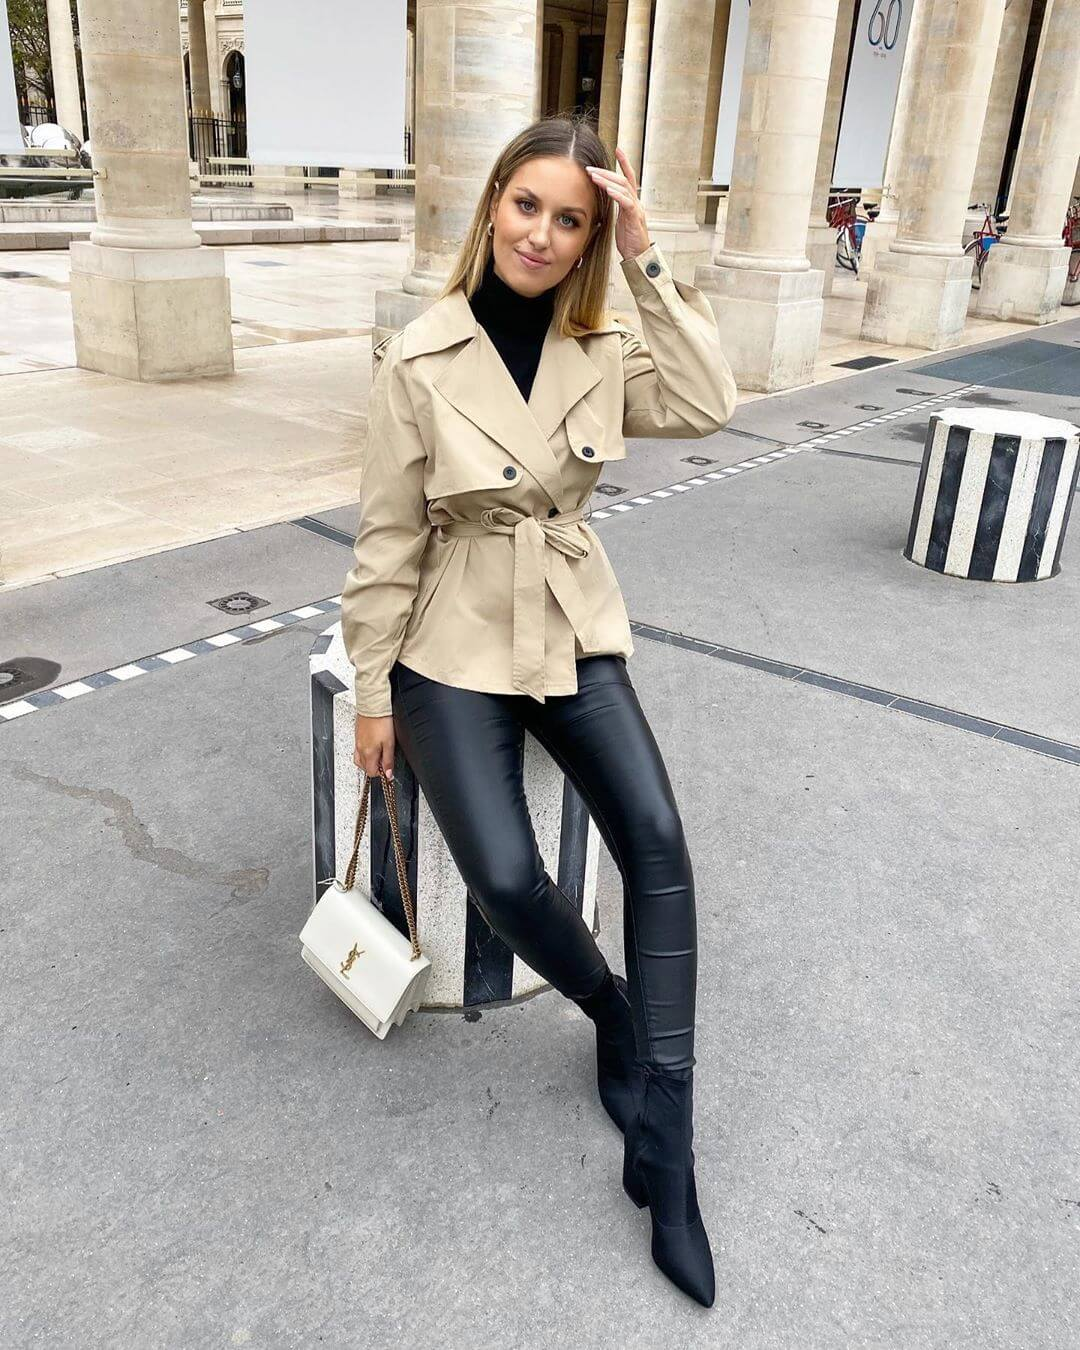 London influencer sits on bollard while wearing jacket and coated black jeans